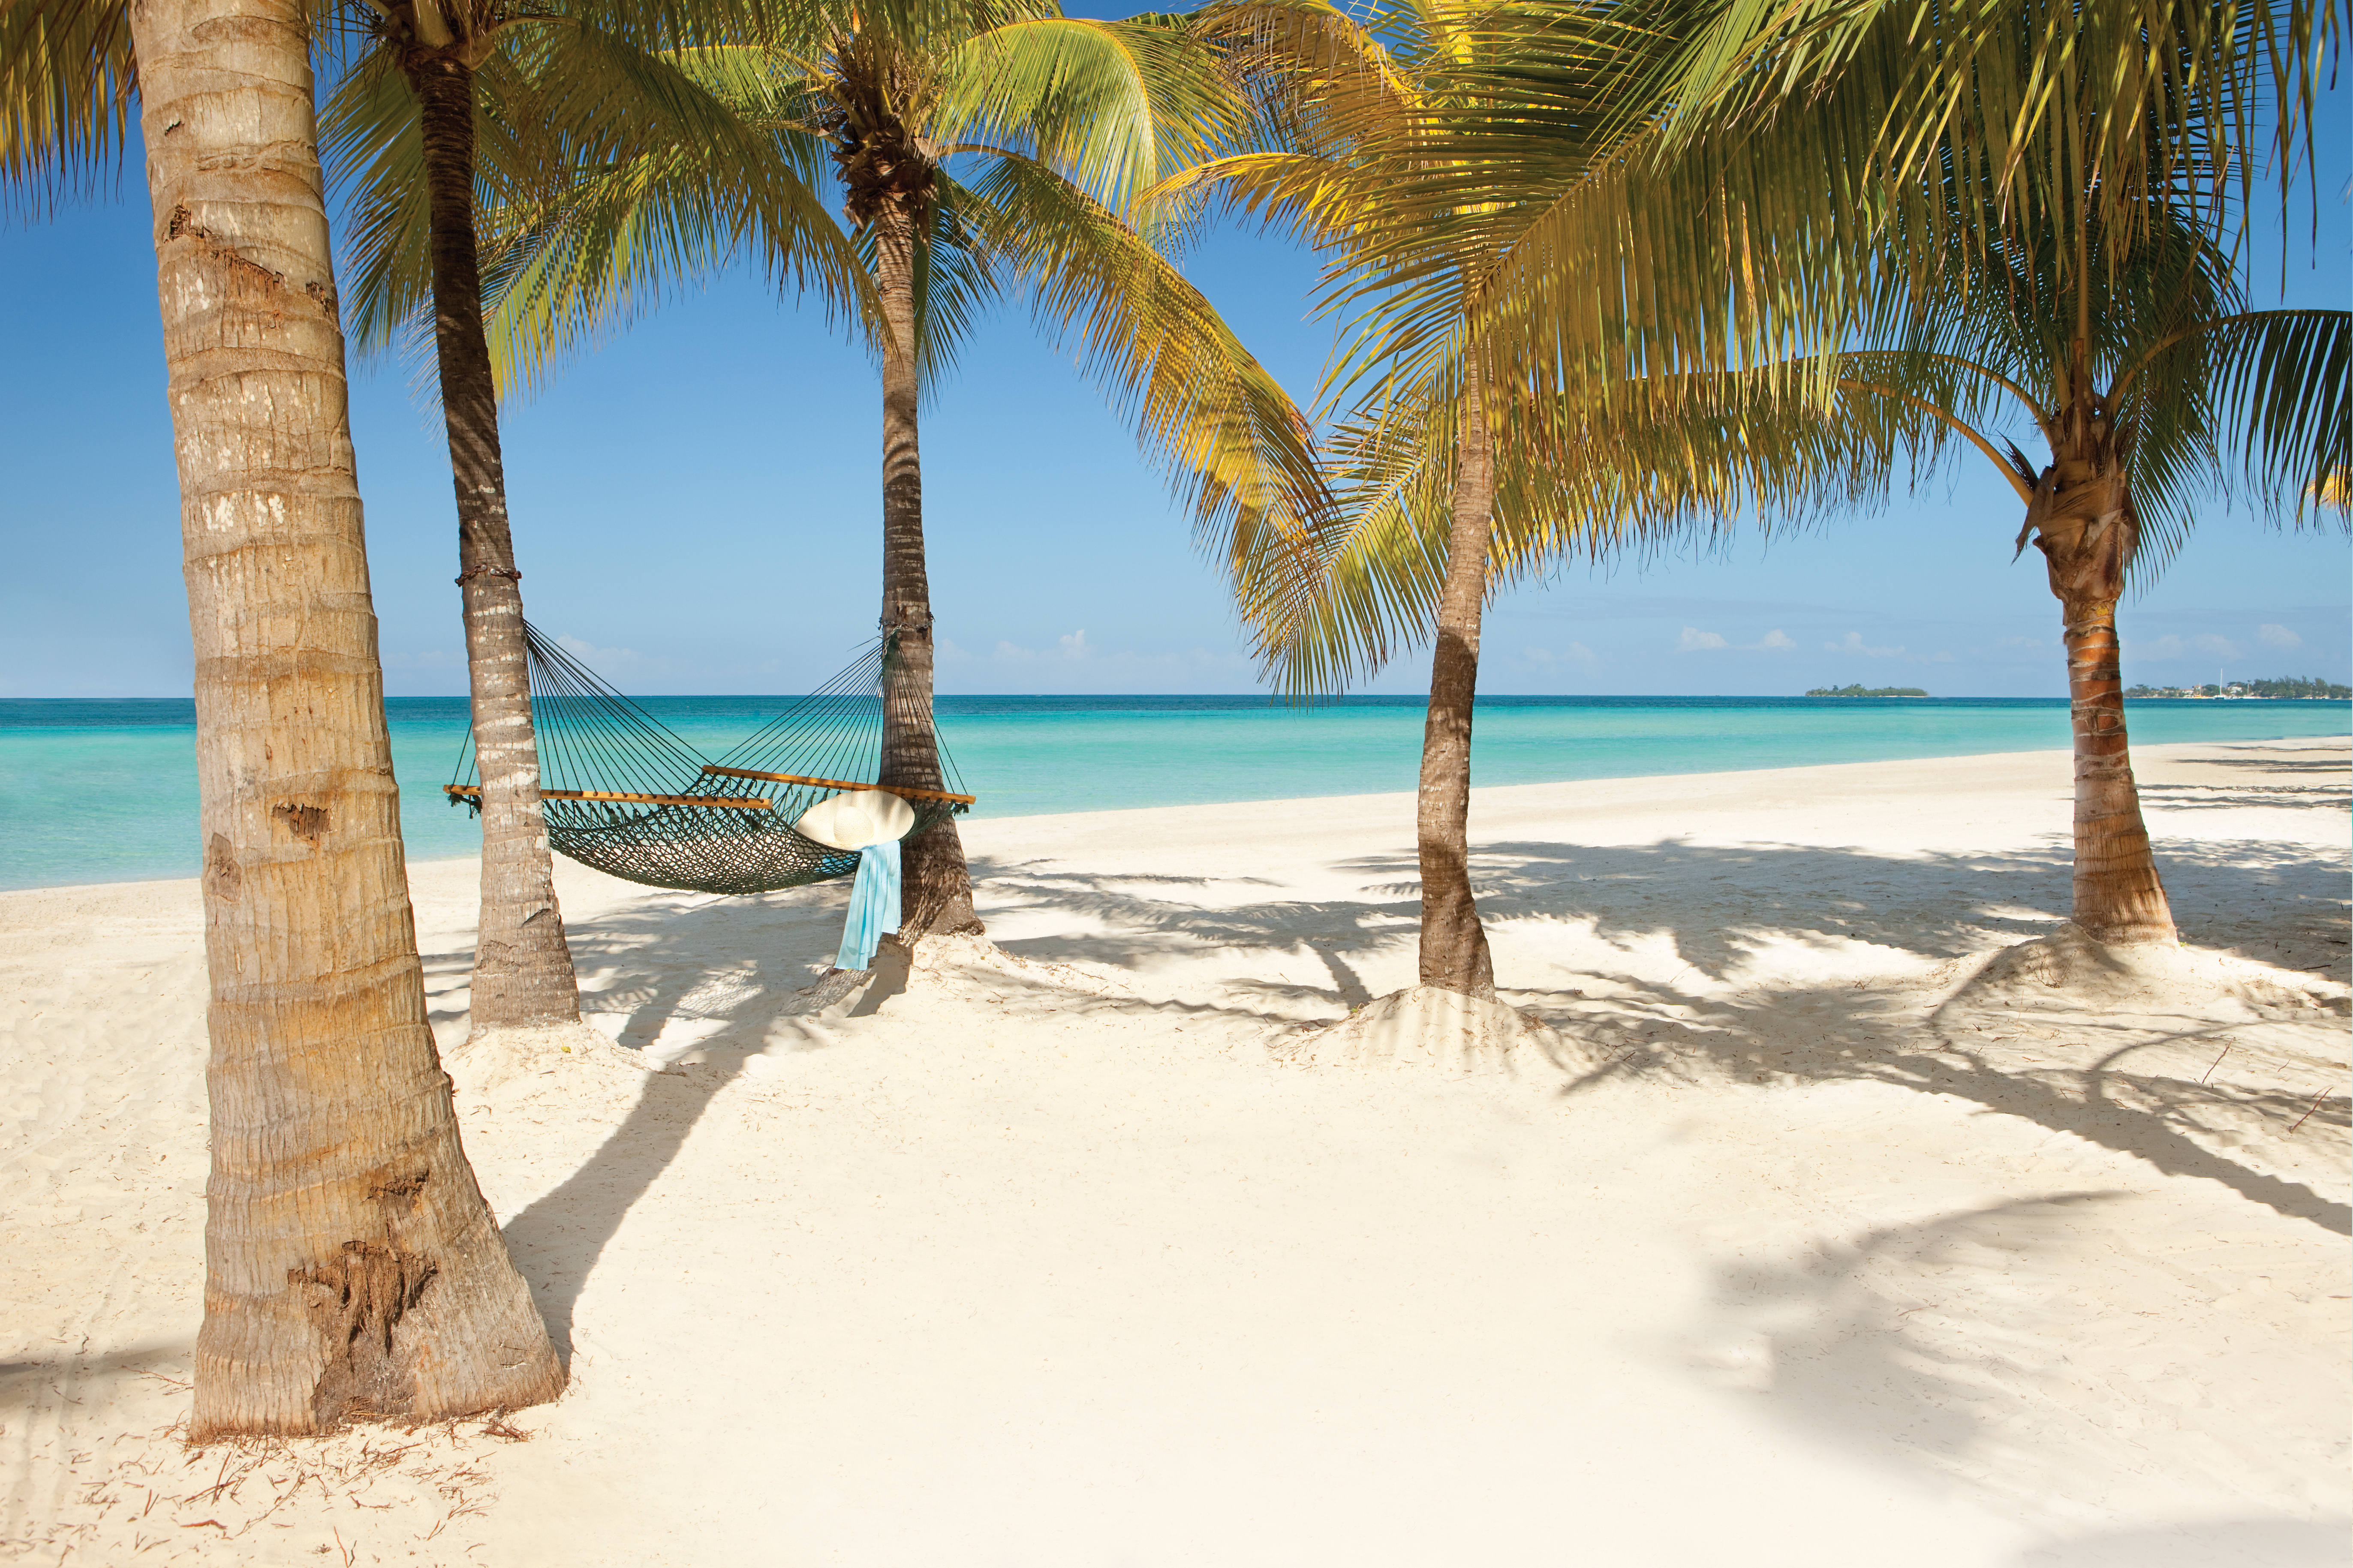 Travel Agency All-Inclusive Resort Couples Swept Away 56